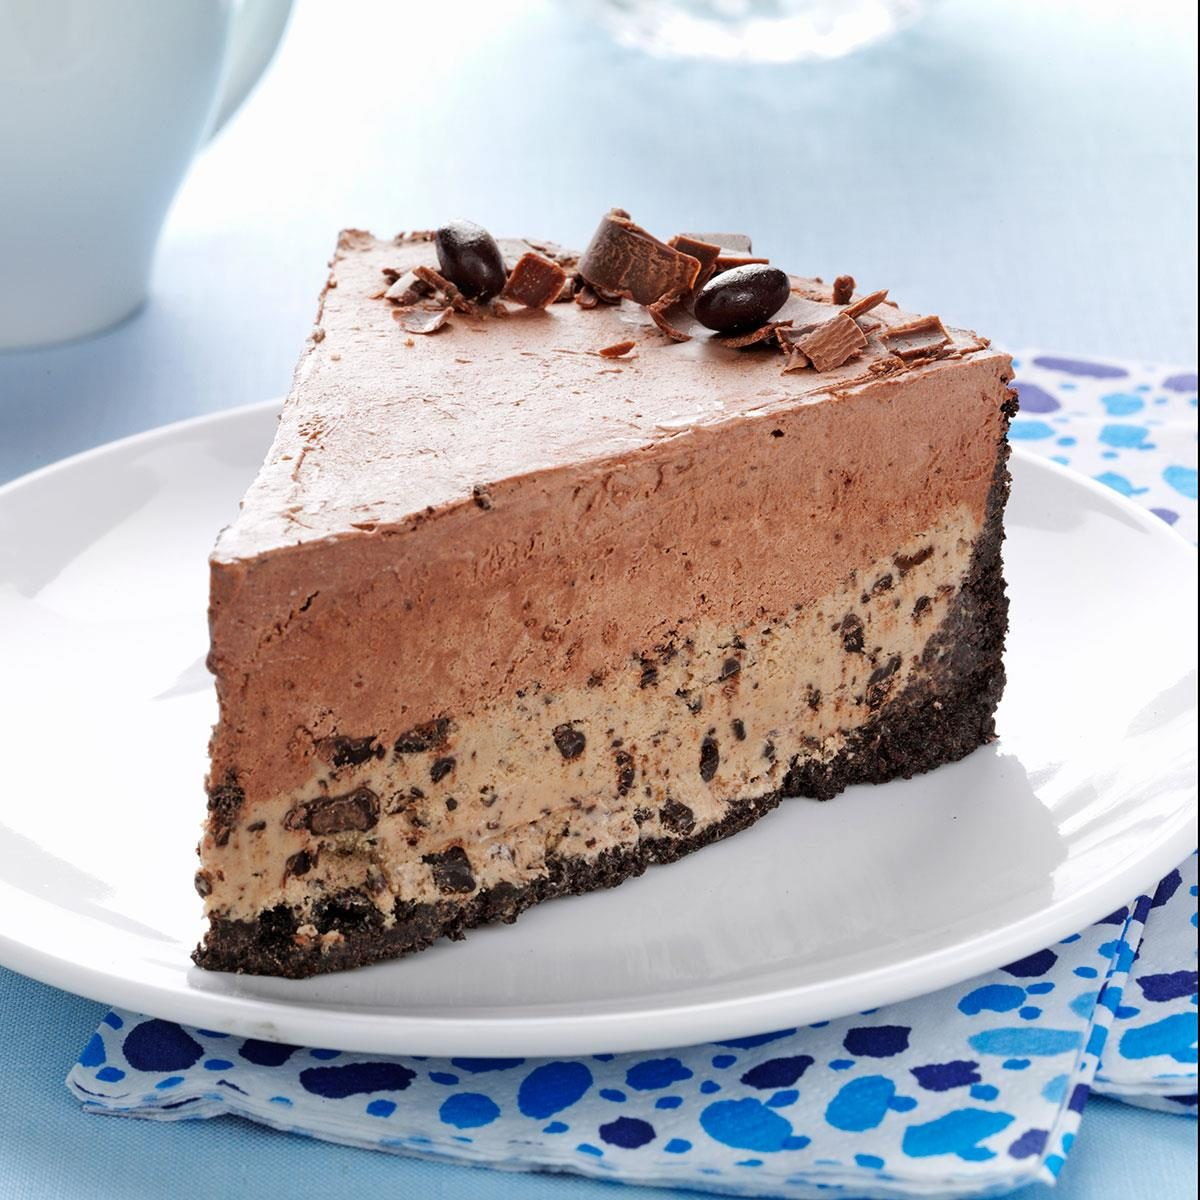 Ice Cream Cake Recipes Pictures : Chocolate-Coffee Bean Ice Cream Cake Recipe Taste of Home